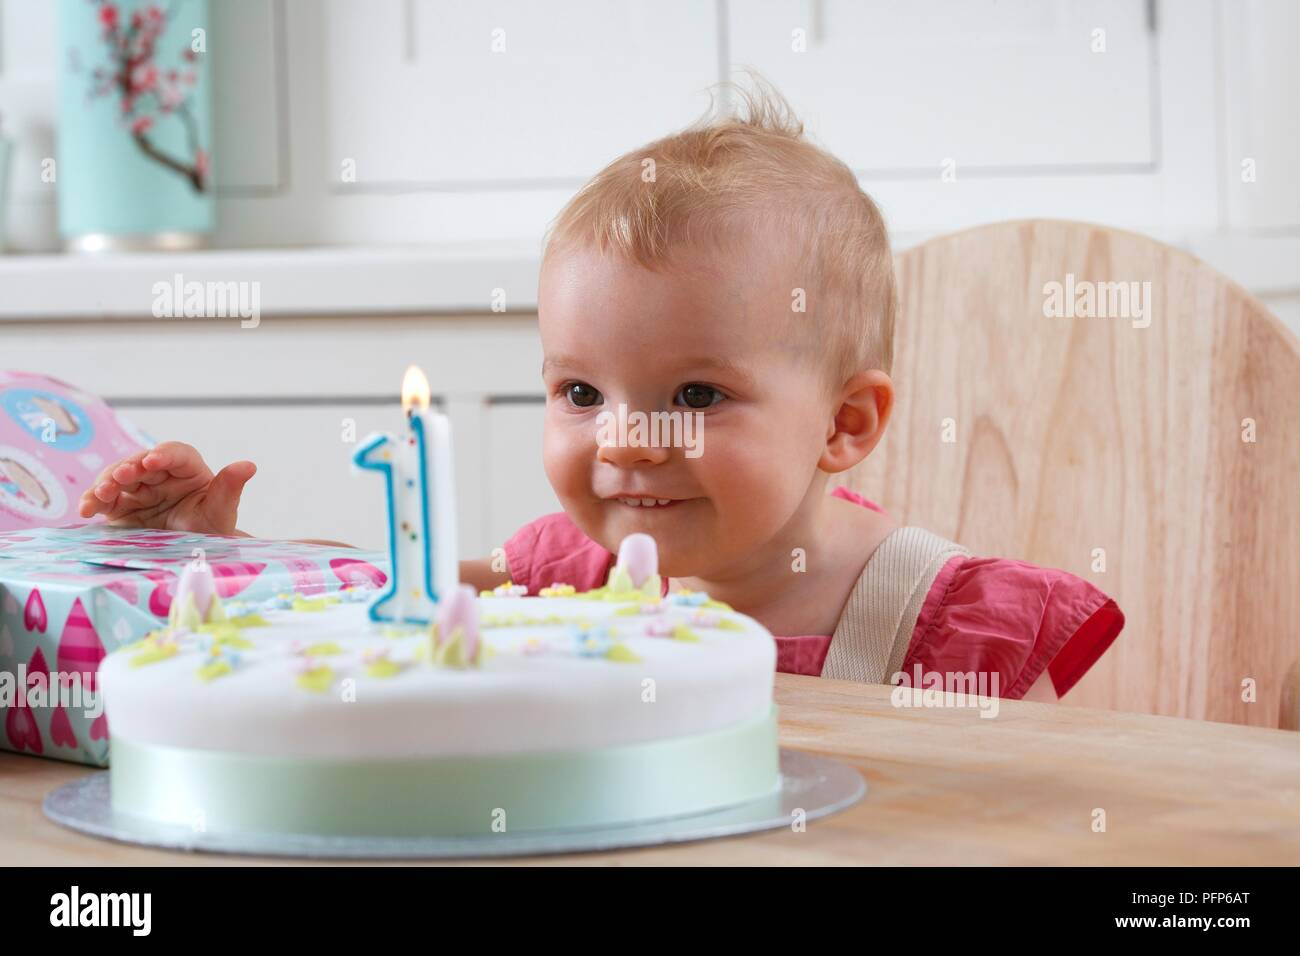 Groovy Baby Girl Sitting At Table Looking At 1St Birthday Cake Stock Funny Birthday Cards Online Hendilapandamsfinfo